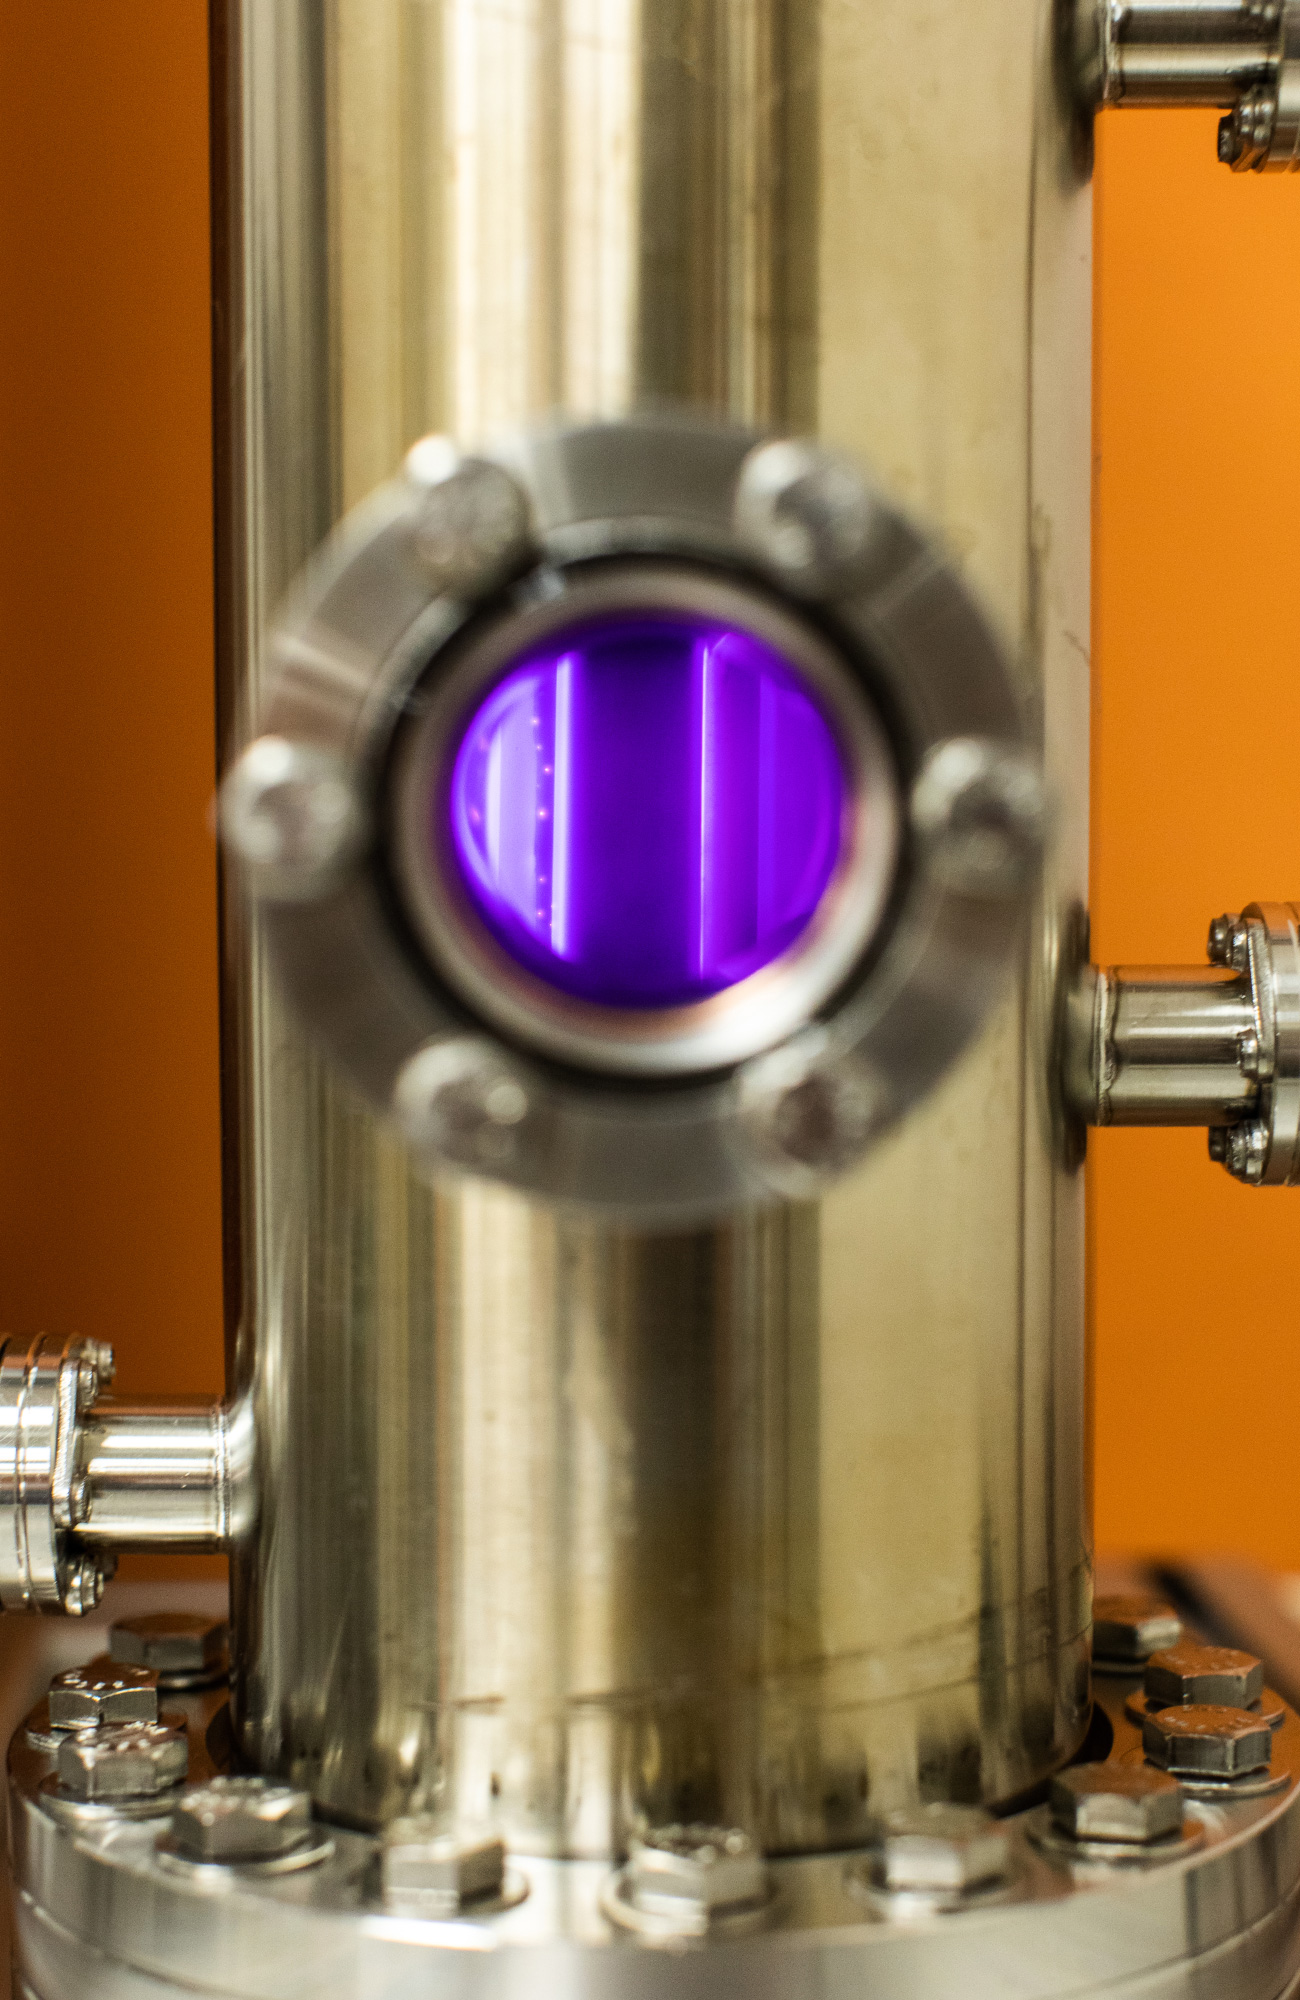 PHOTO: Inside the planetary atmospheric simulation chamber, various gasses get exposed to high-energy plasmas.